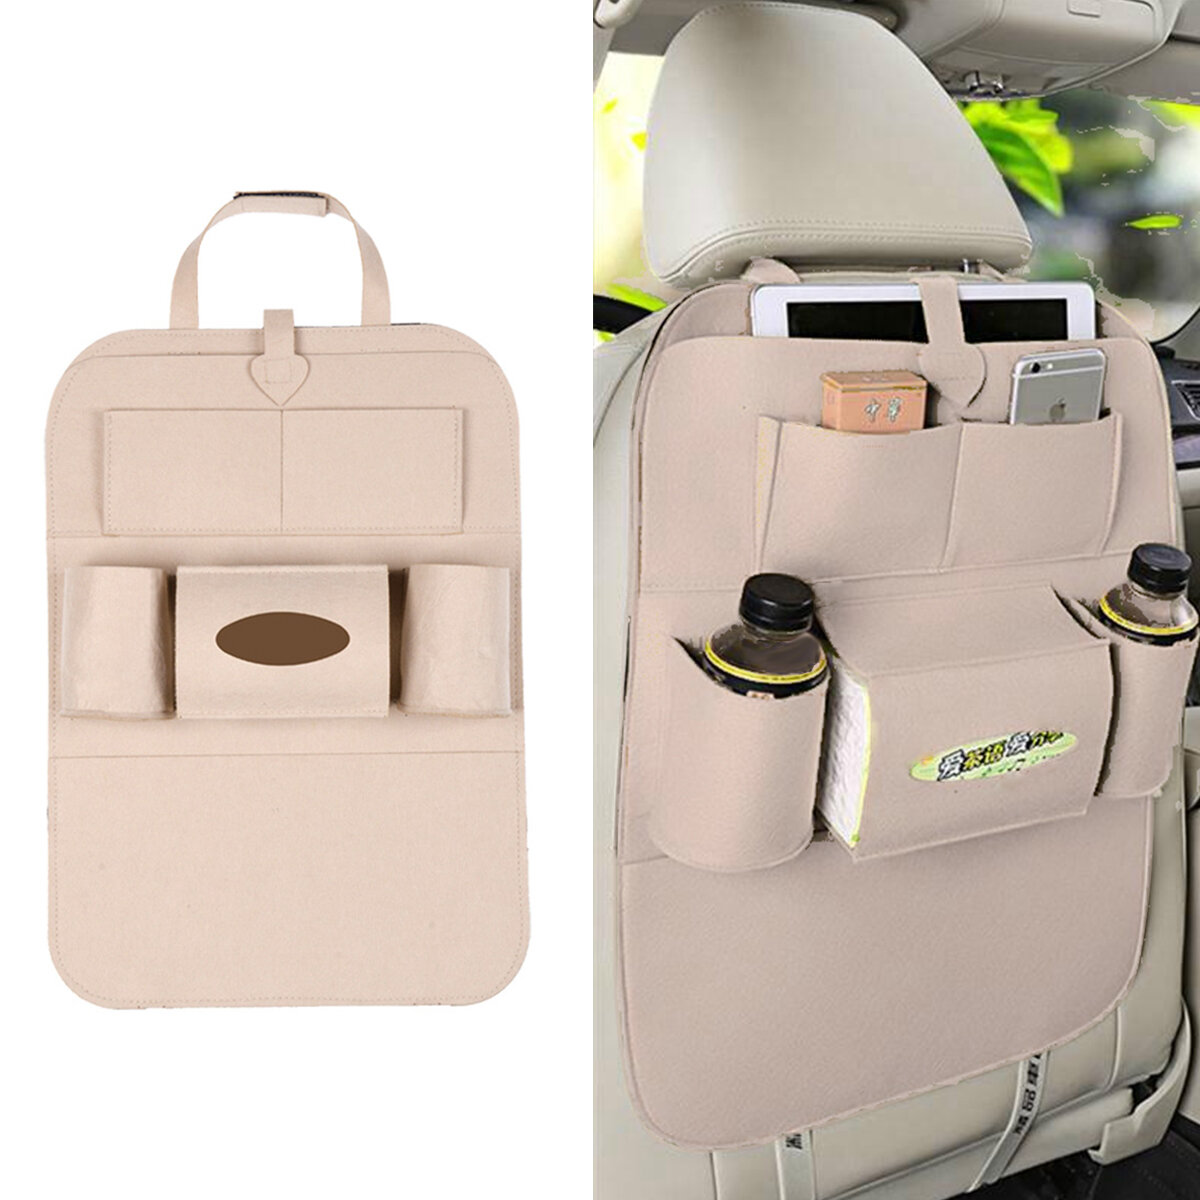 Non-woven Car Seat Back Tidying Storage Bag Hanging Organizer Pocket Pouch Cup Bottle Phone Holder Outdoor Travel